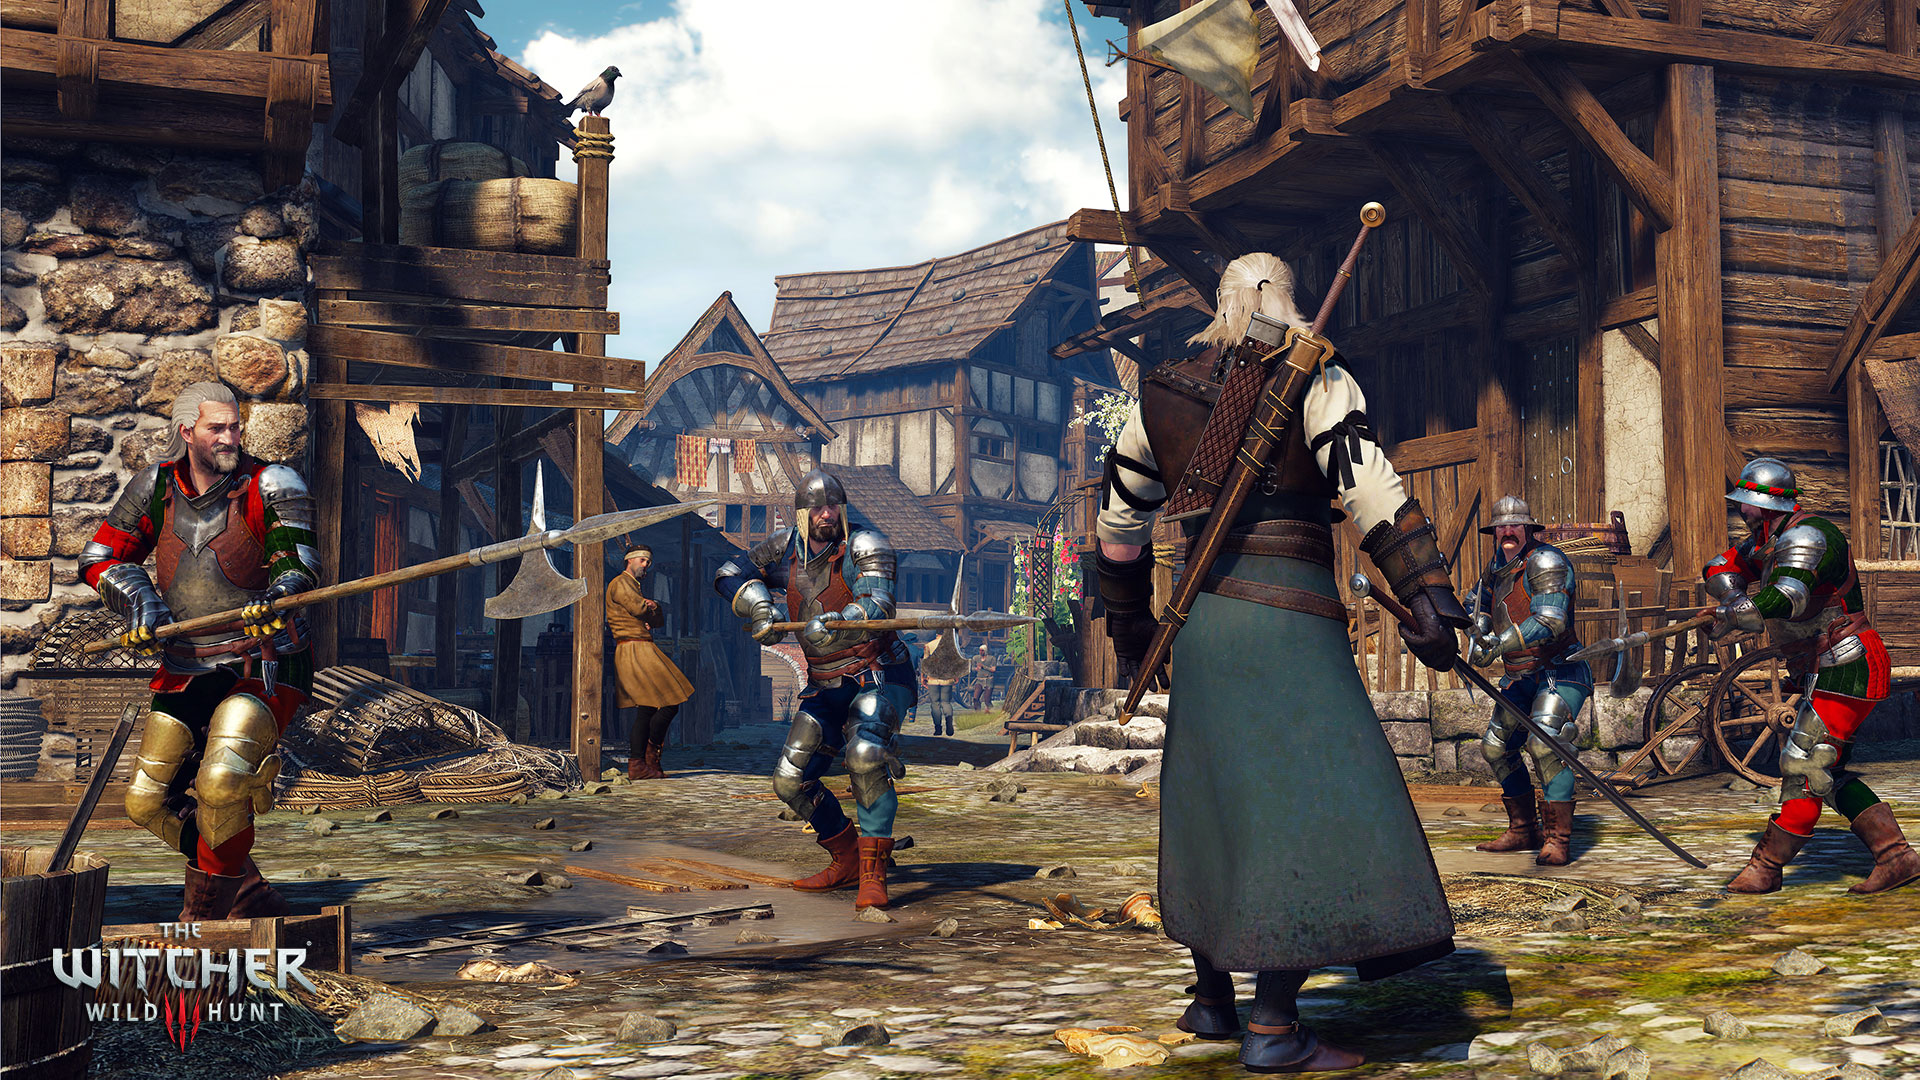 Witcher 3 wild hunt game